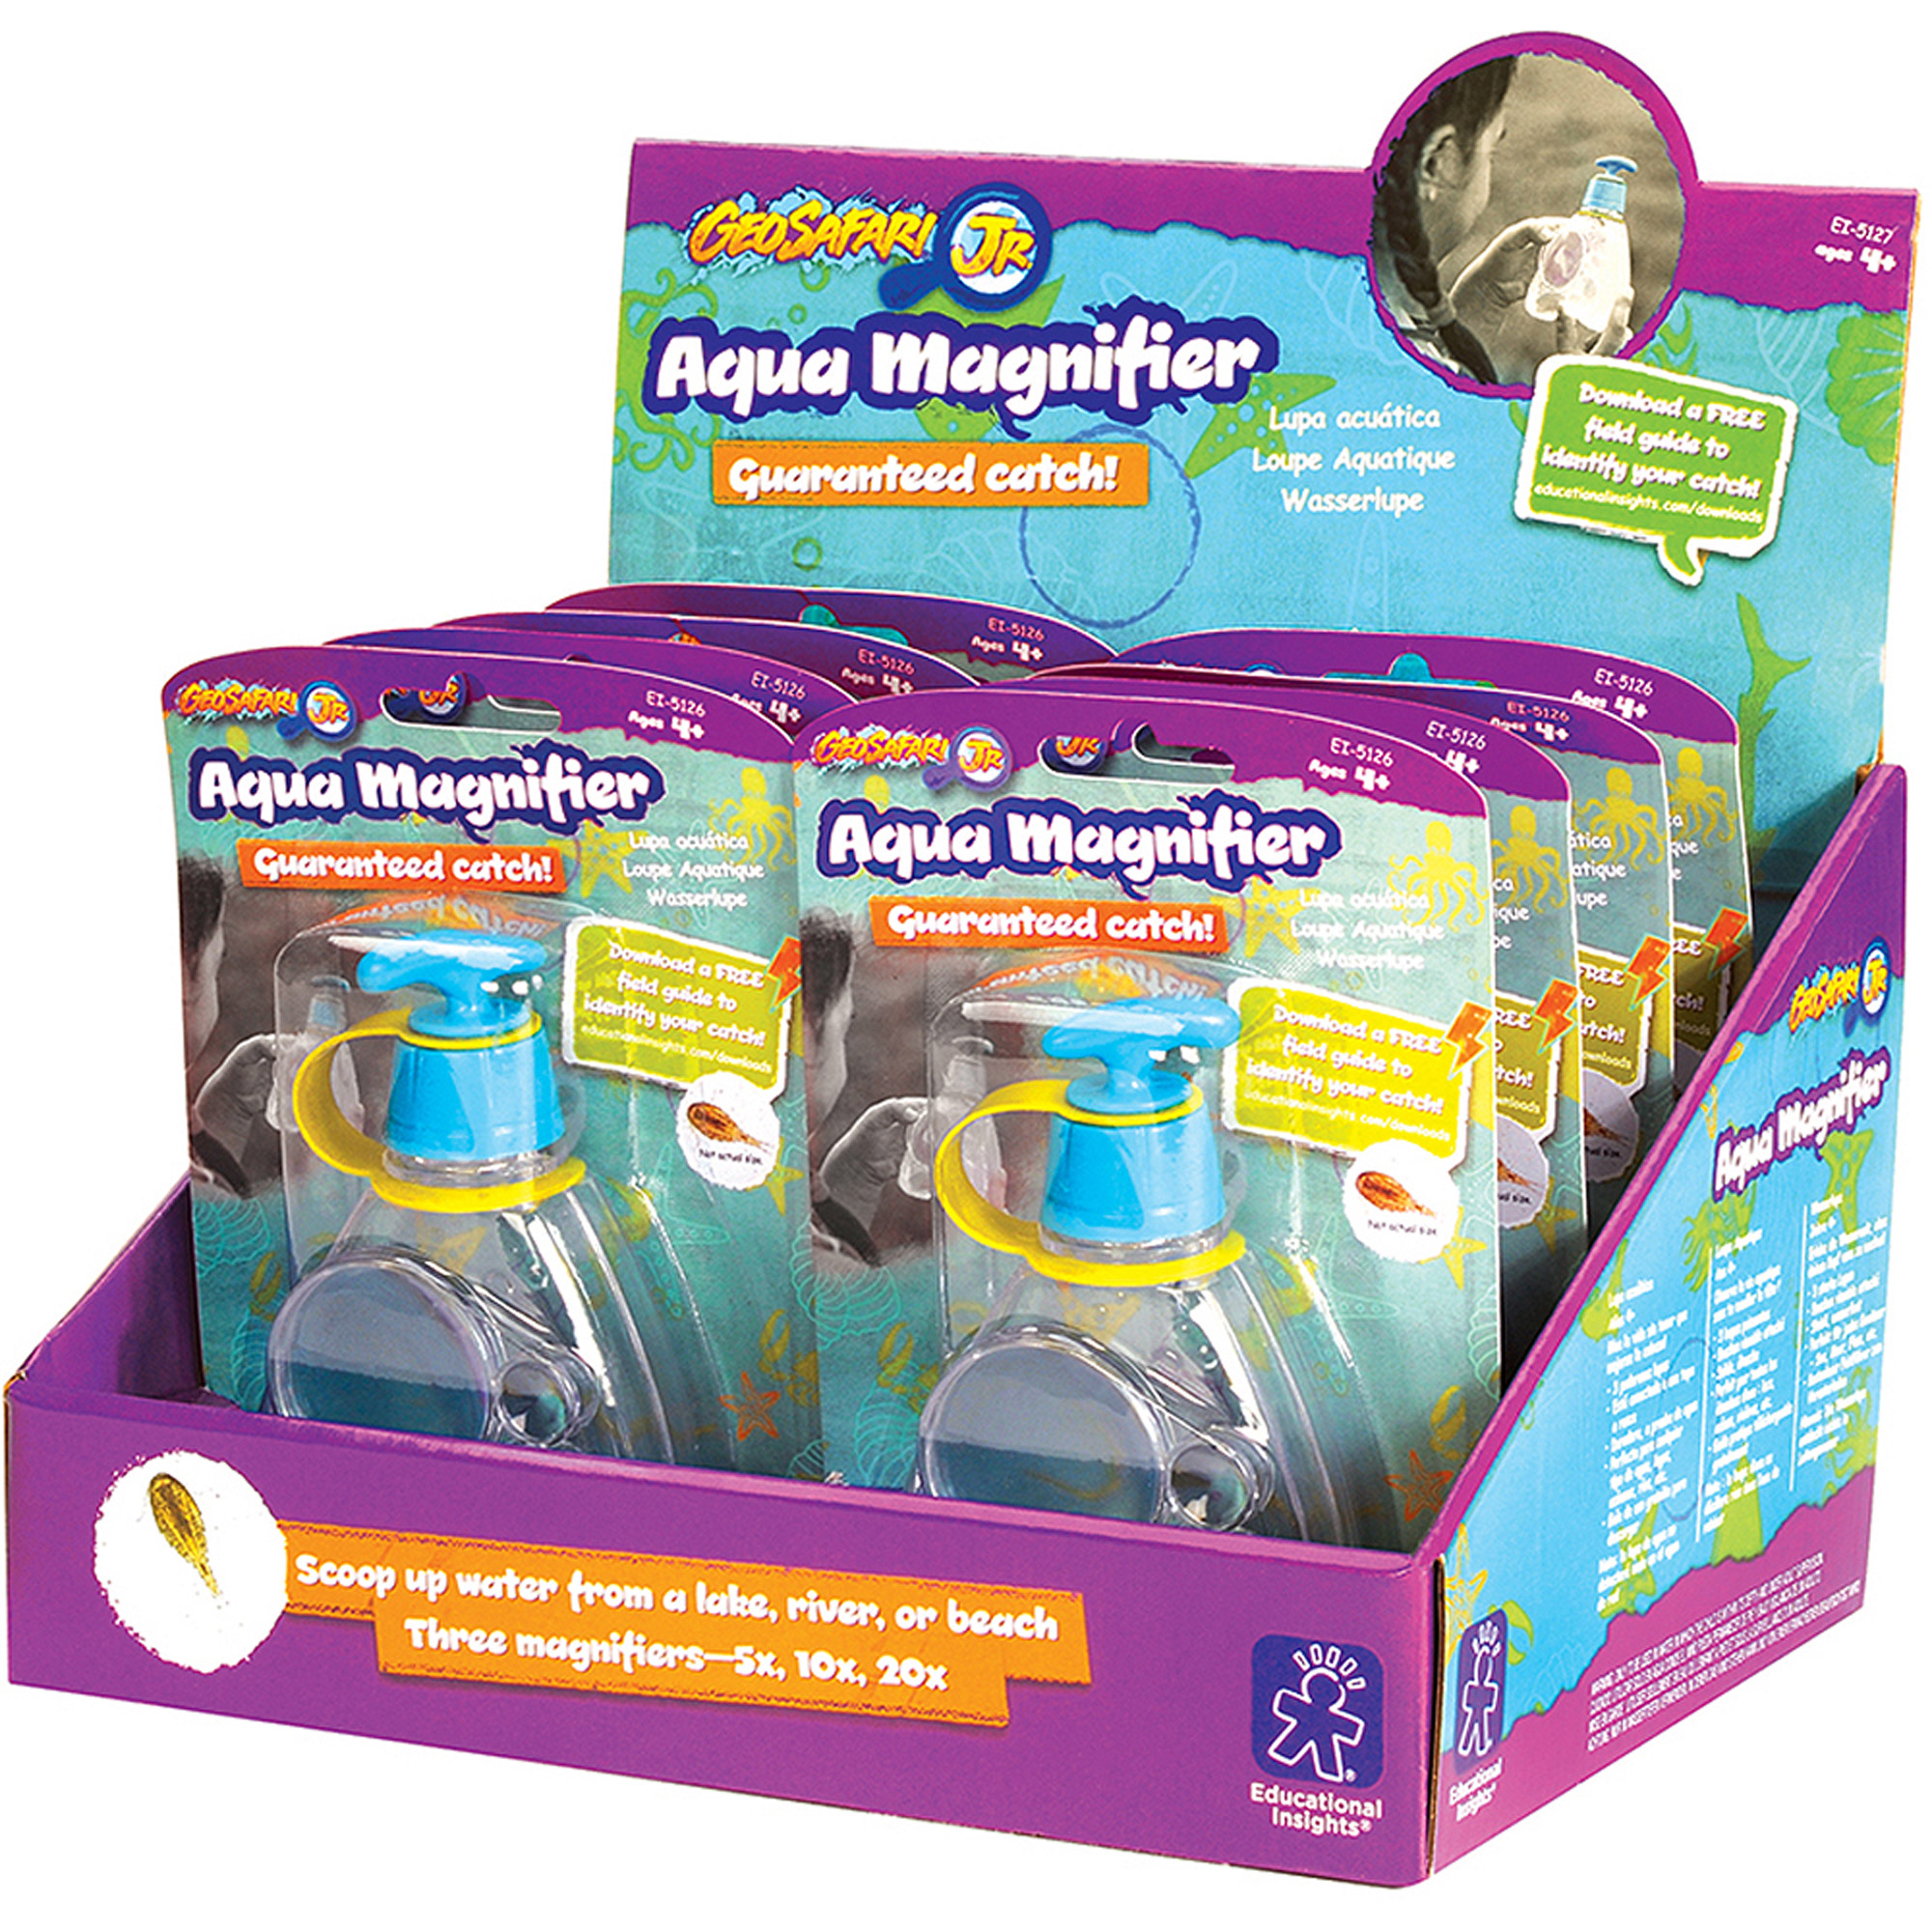 Educational Insights Aqua Magnifier, Party Pack